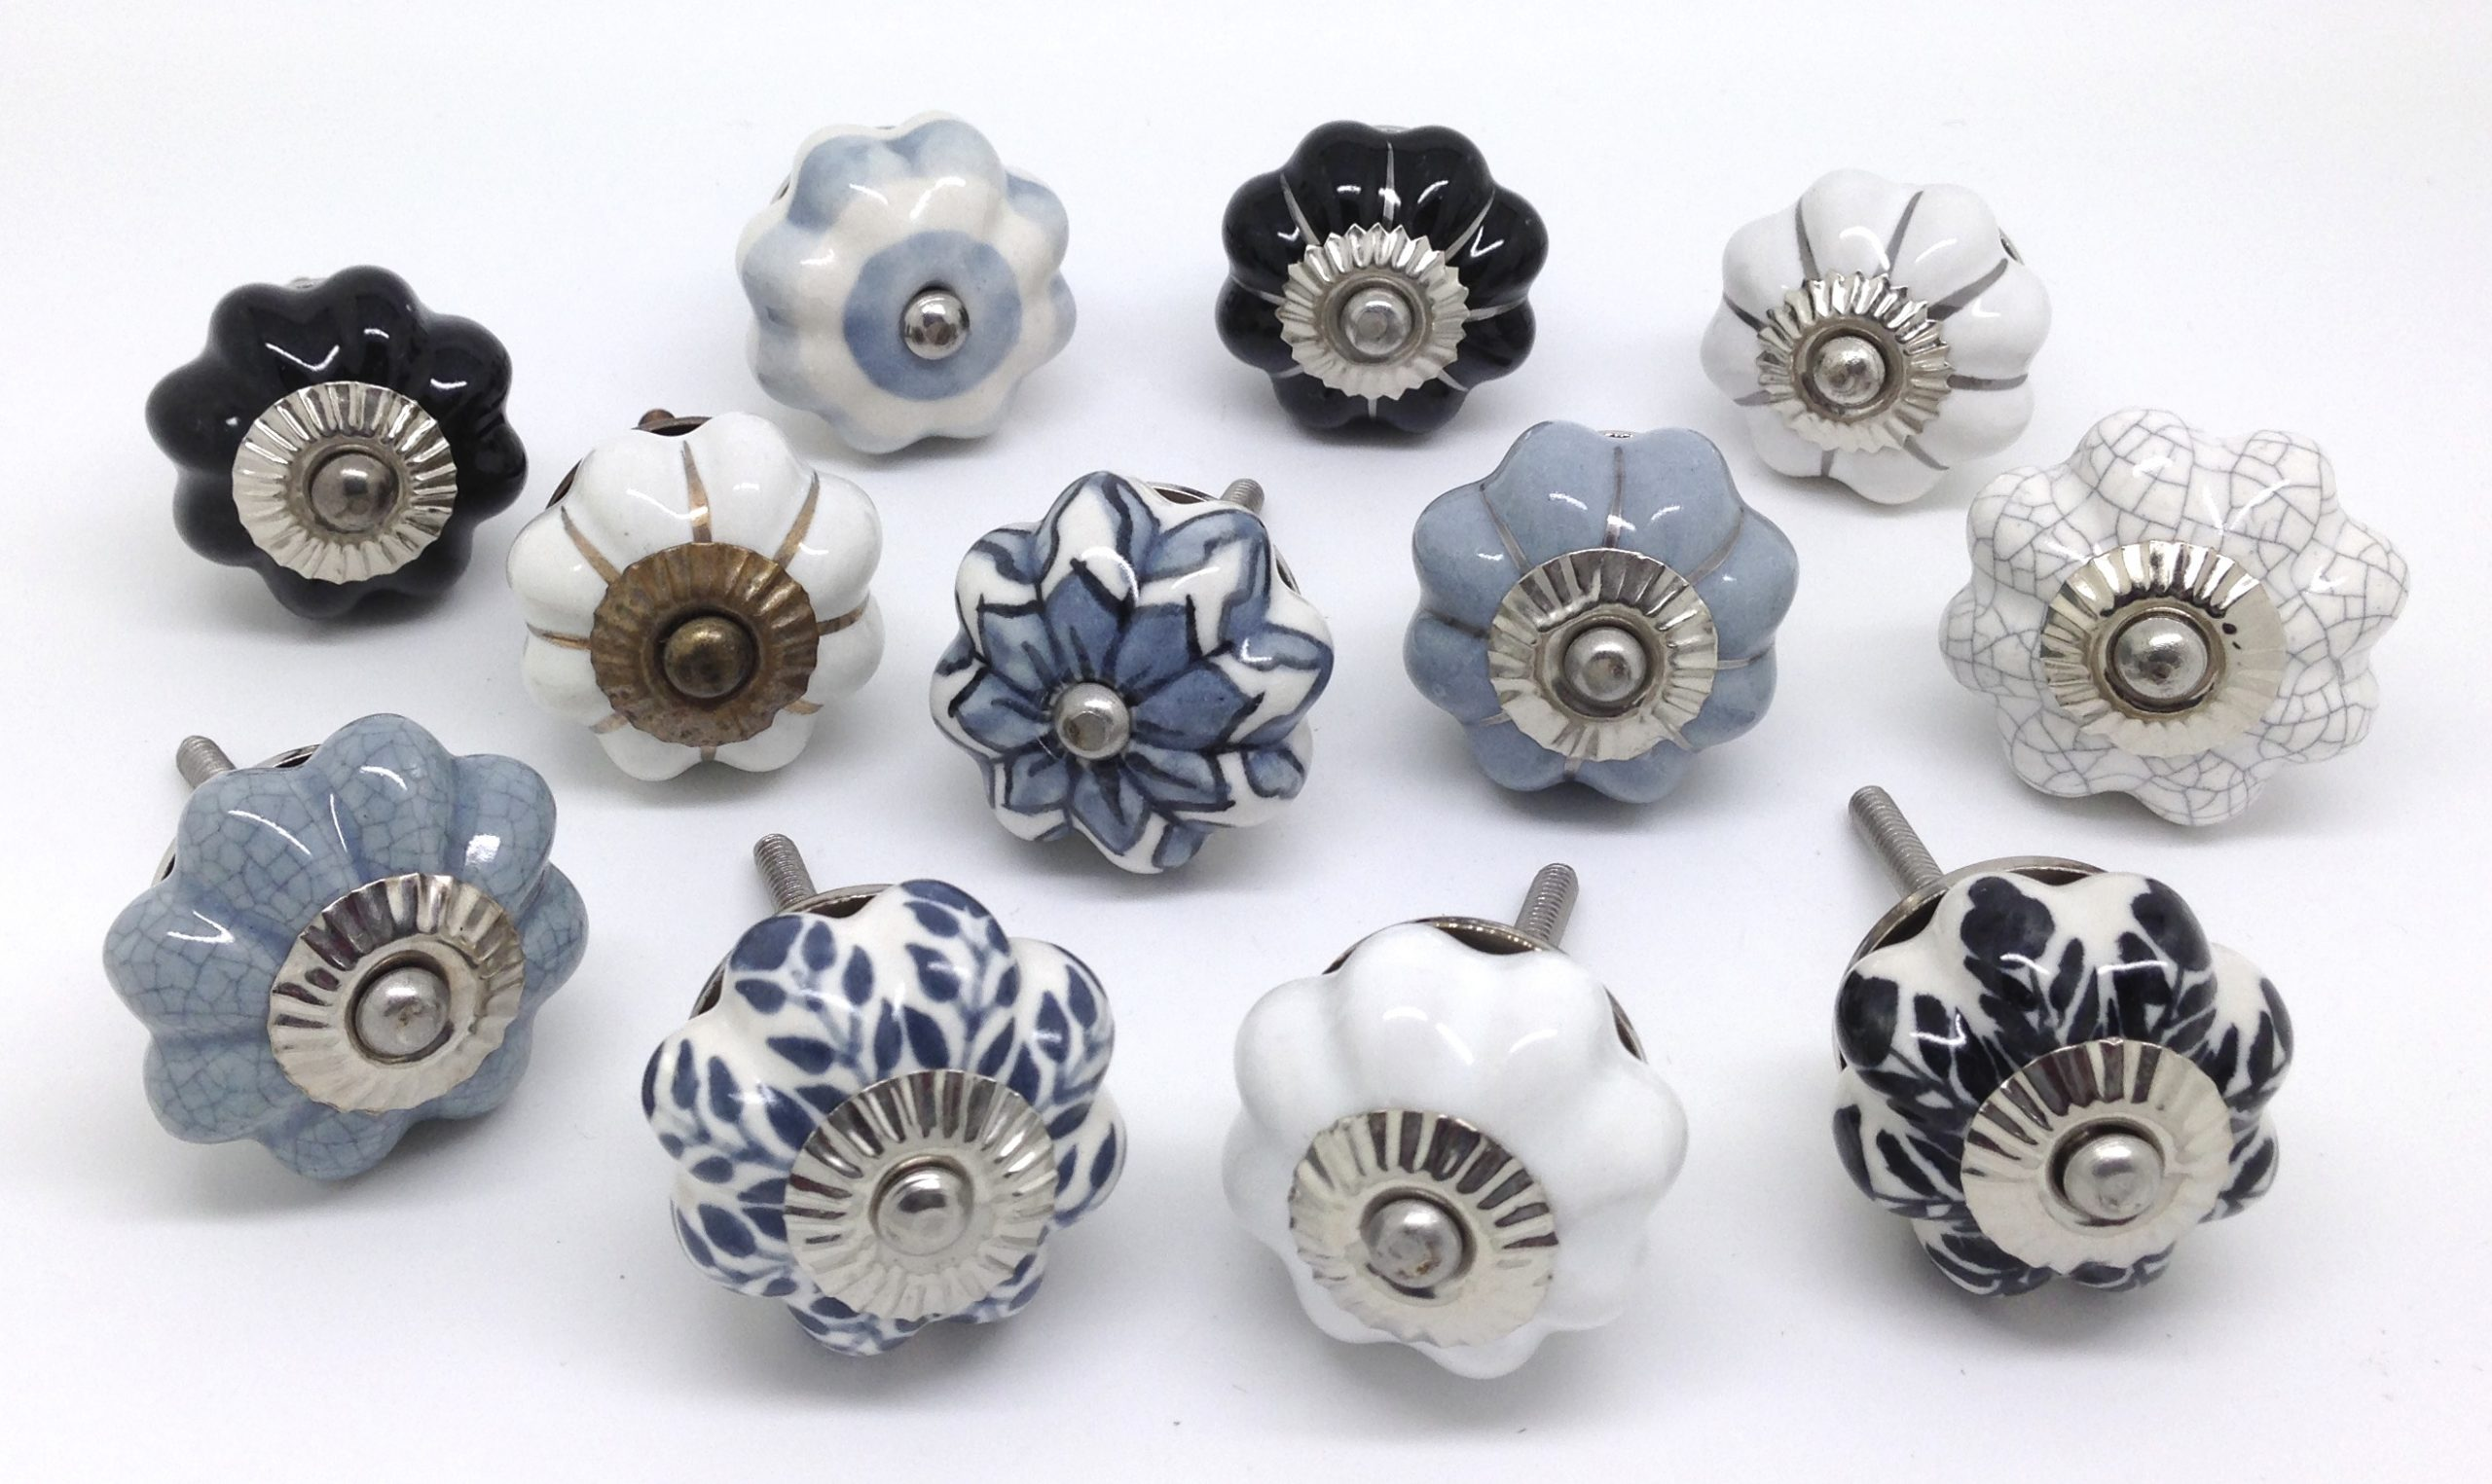 Flower Shaped Door Knobs - Perfectly Vintage!